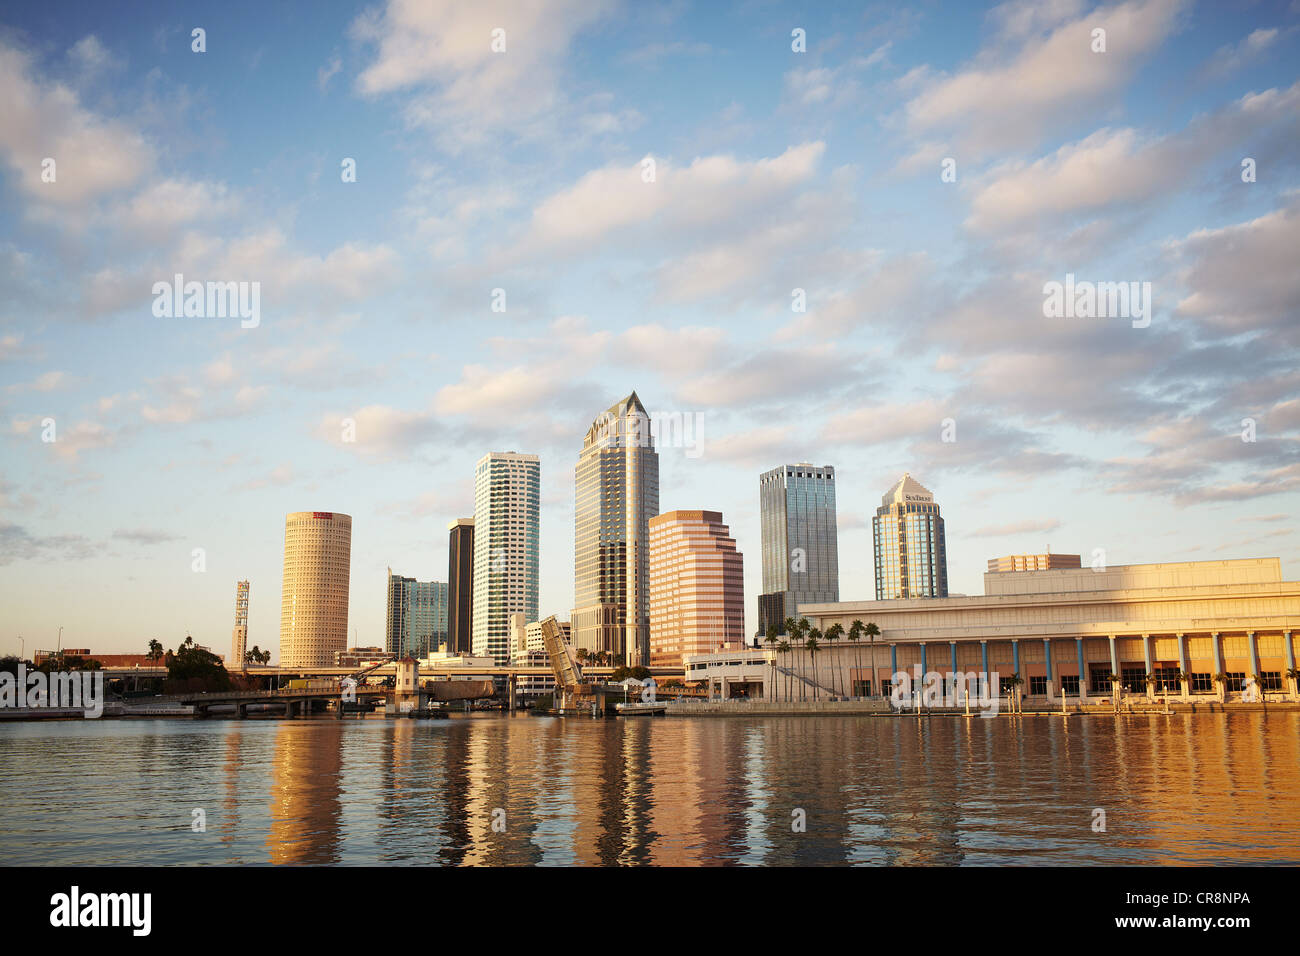 Skyline, Tampa, Florida, USA Stockbild